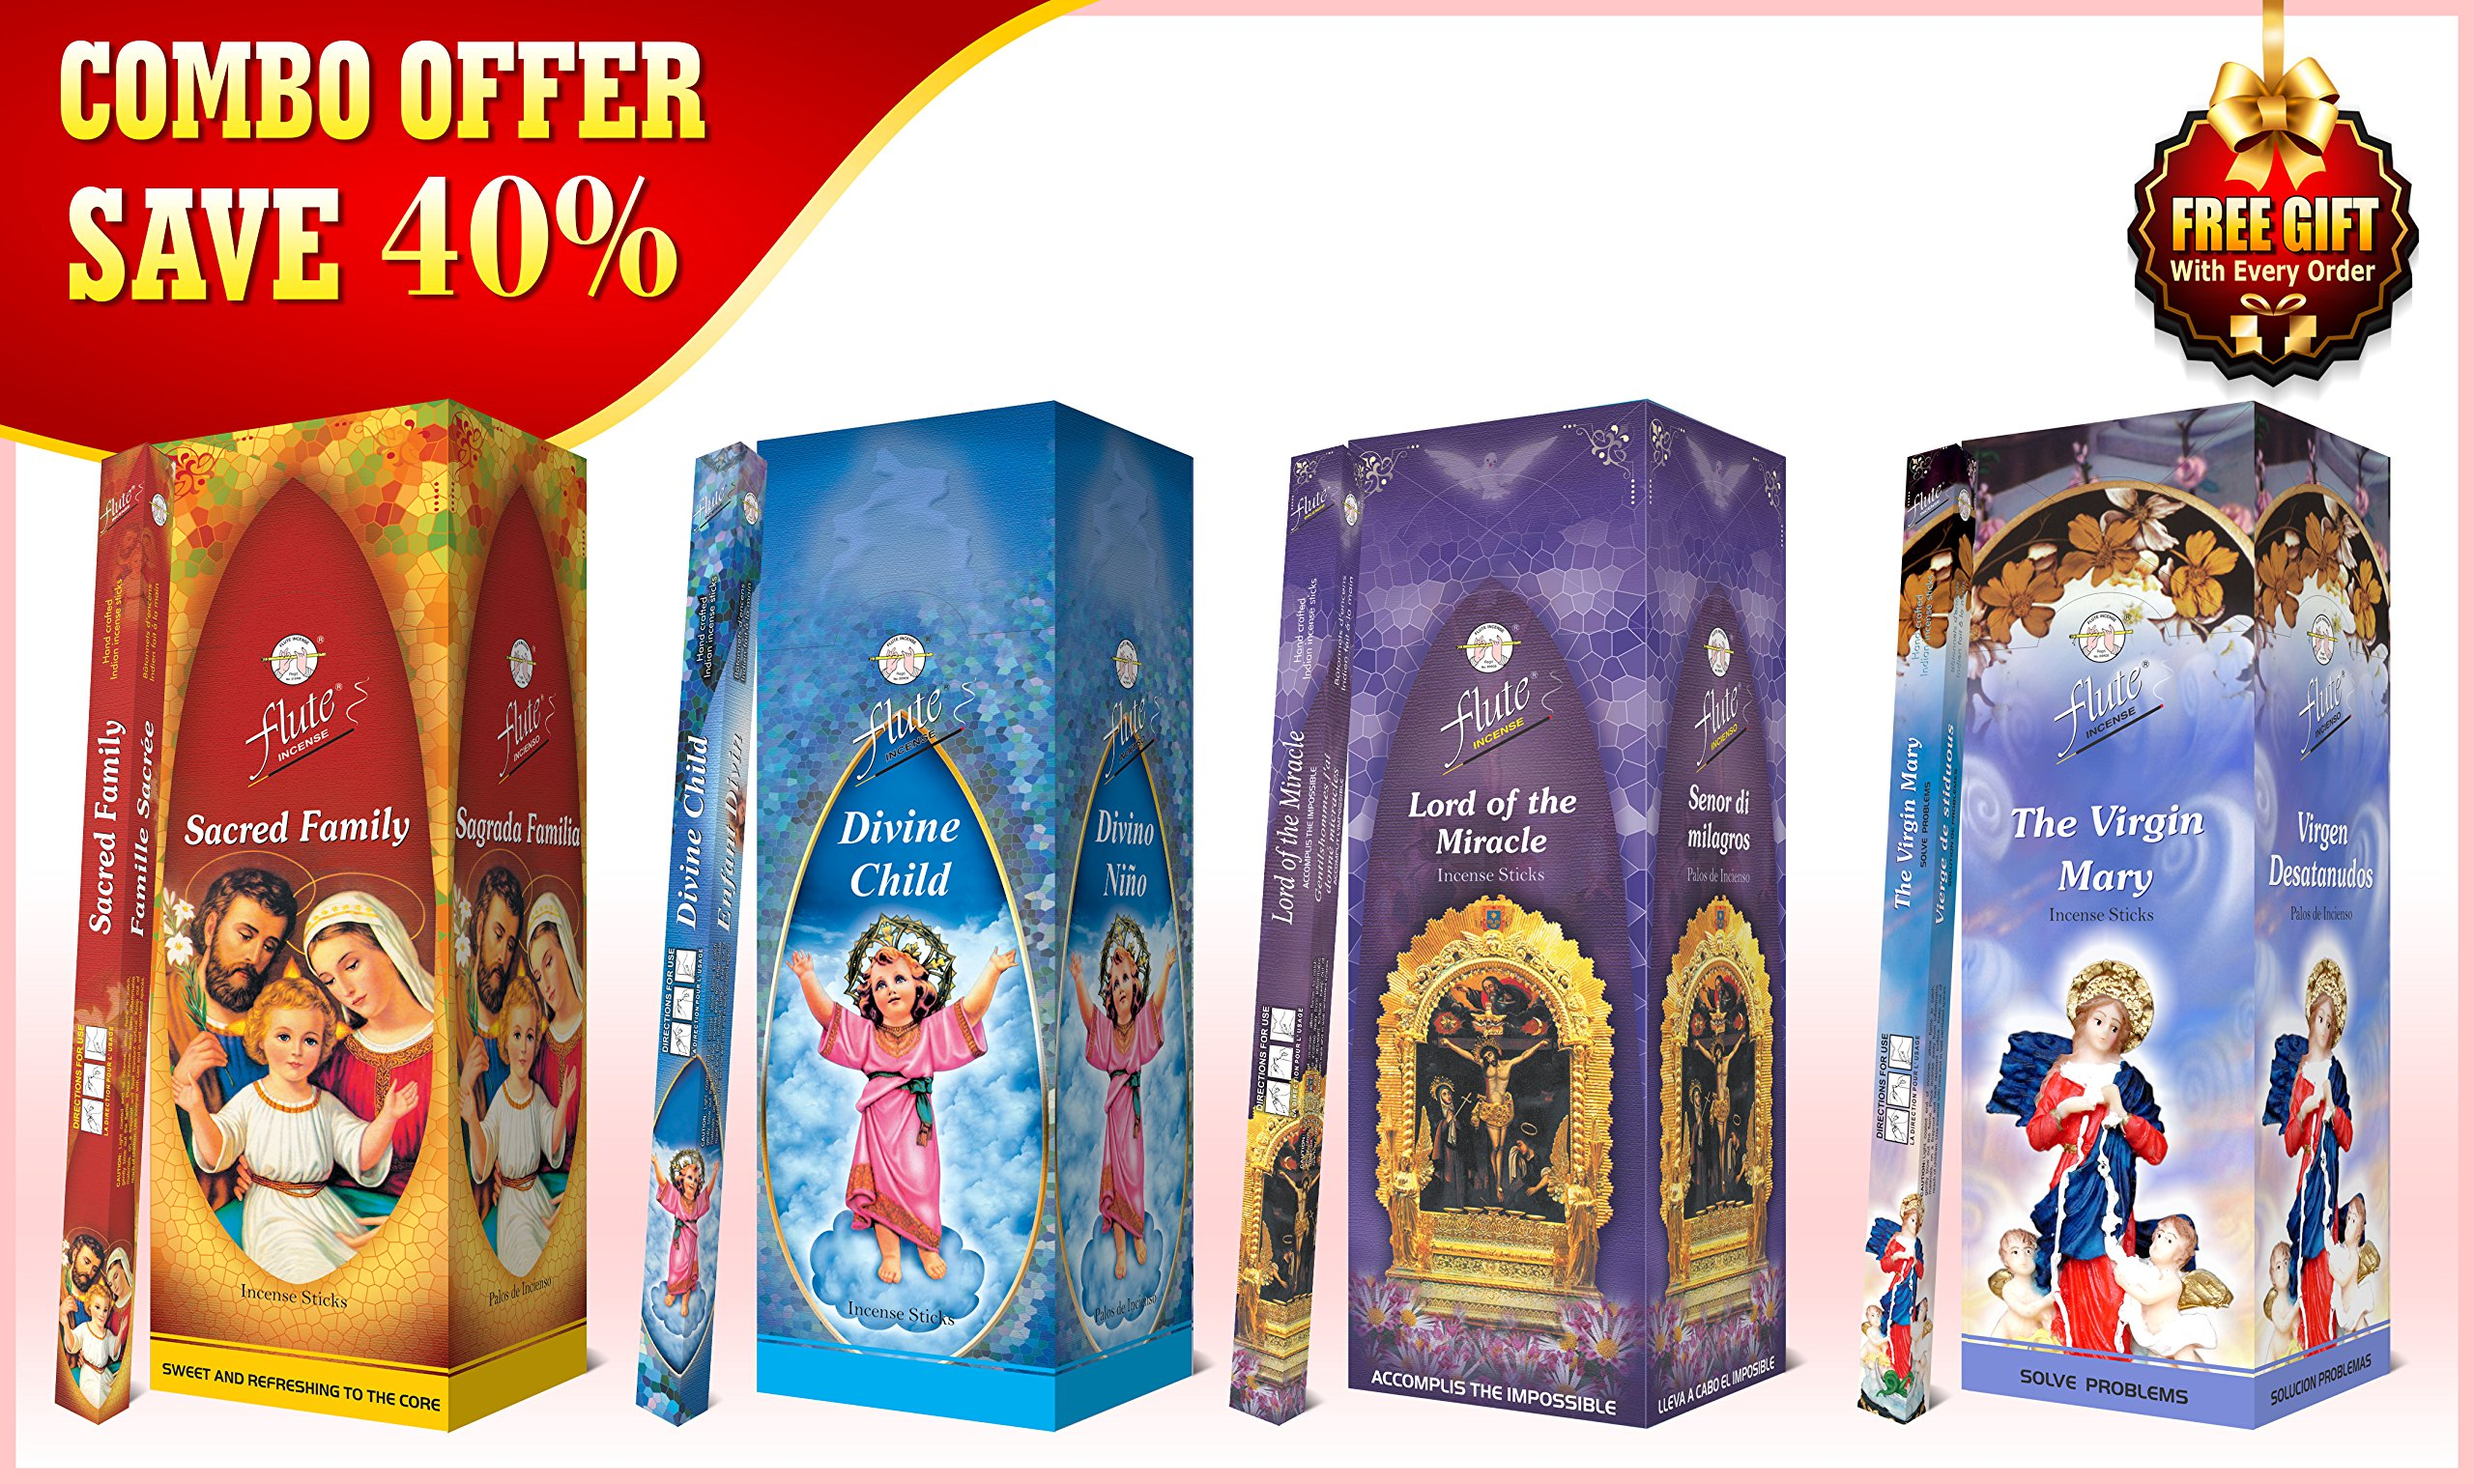 Combo Incense Sticks Save 40% - Sacred Family, Divine Child, Lord of the Miracle, The Virgin Mary - 800 Flute Square Pack Sticks